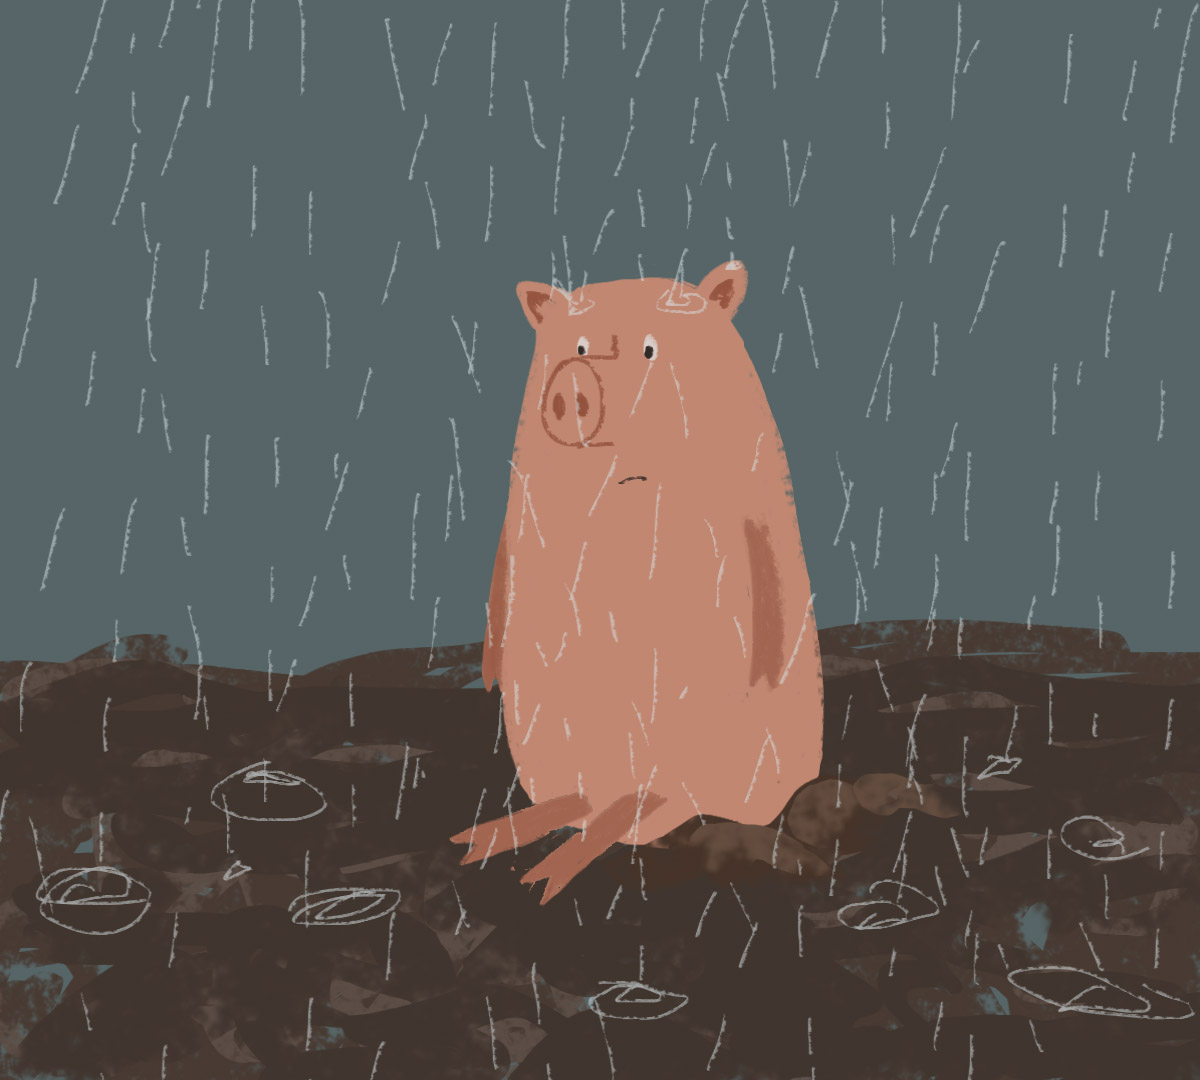 day 15 - pig in the mud.jpg